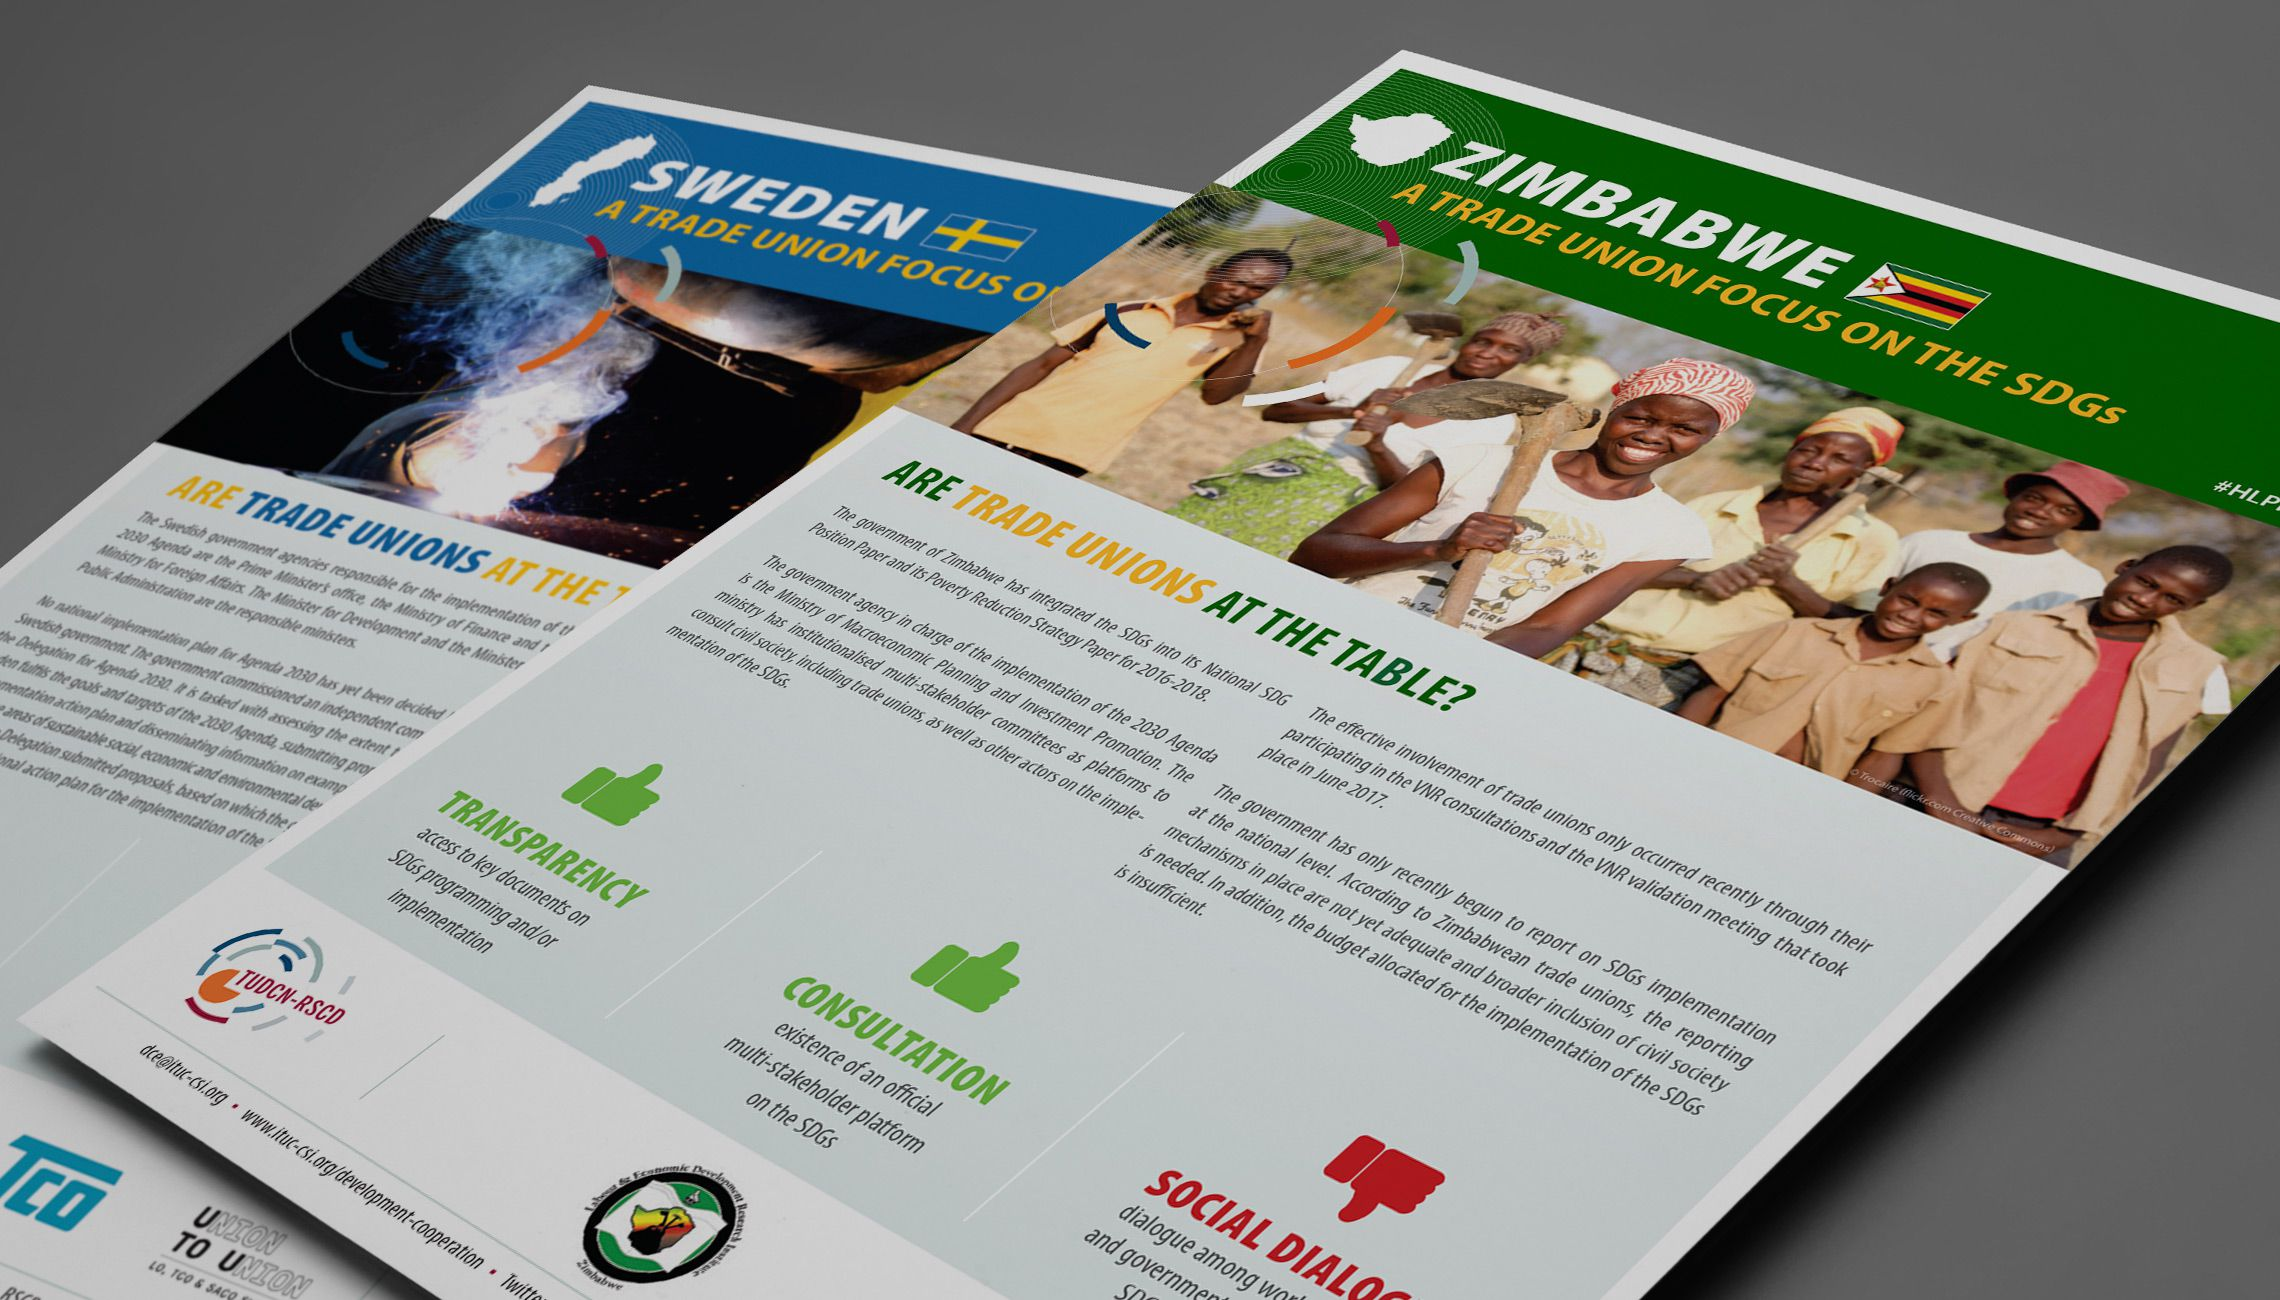 publication: Sustainable development factsheets - image 3